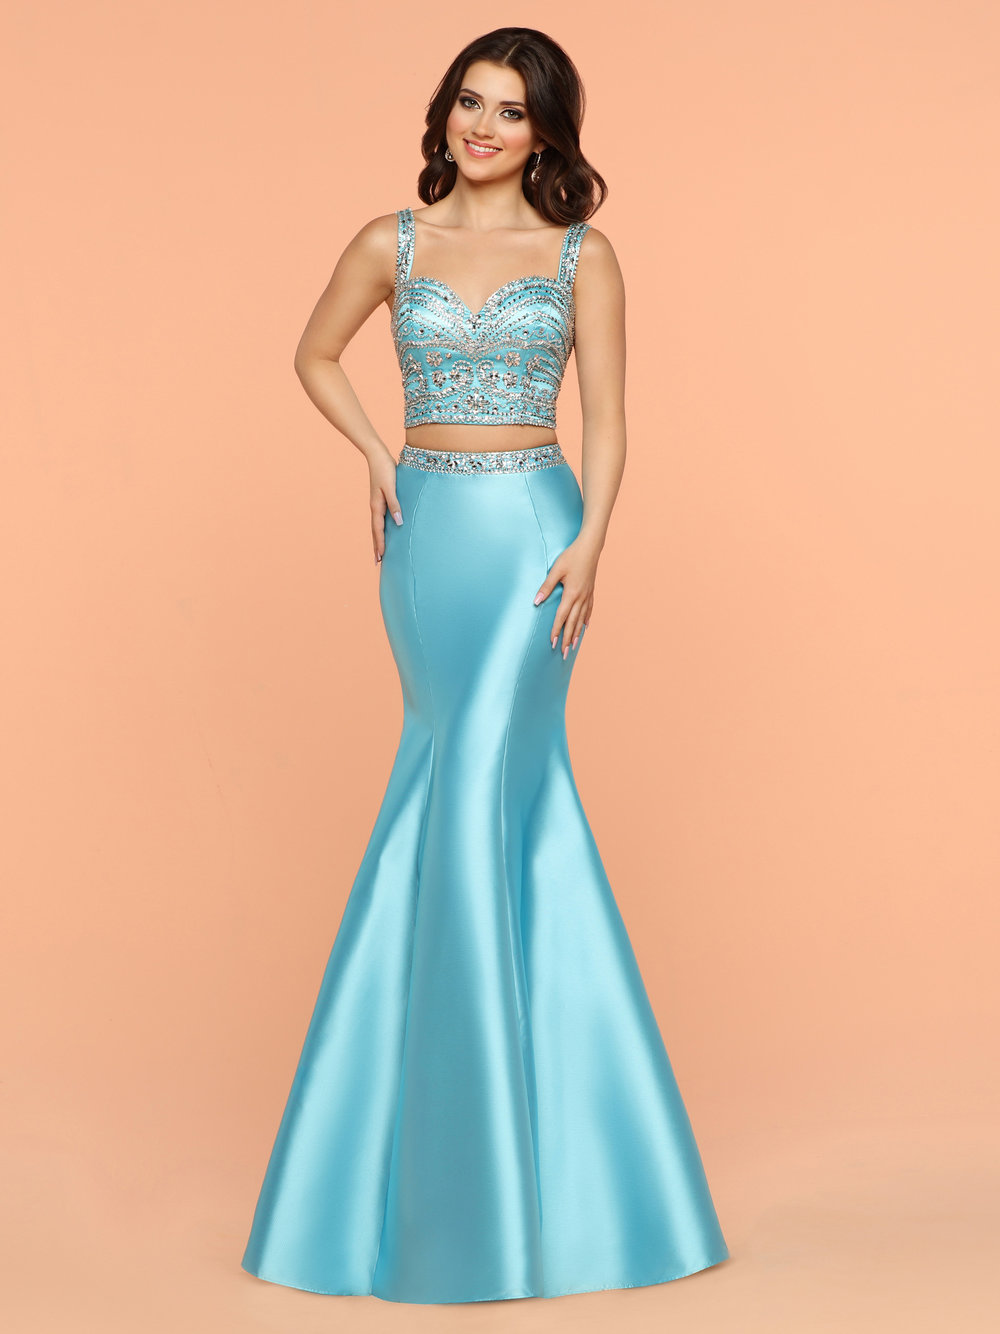 Sparkle Turquoise 71876 Two Piece Dress Beaded Sweetheart Neckline ...